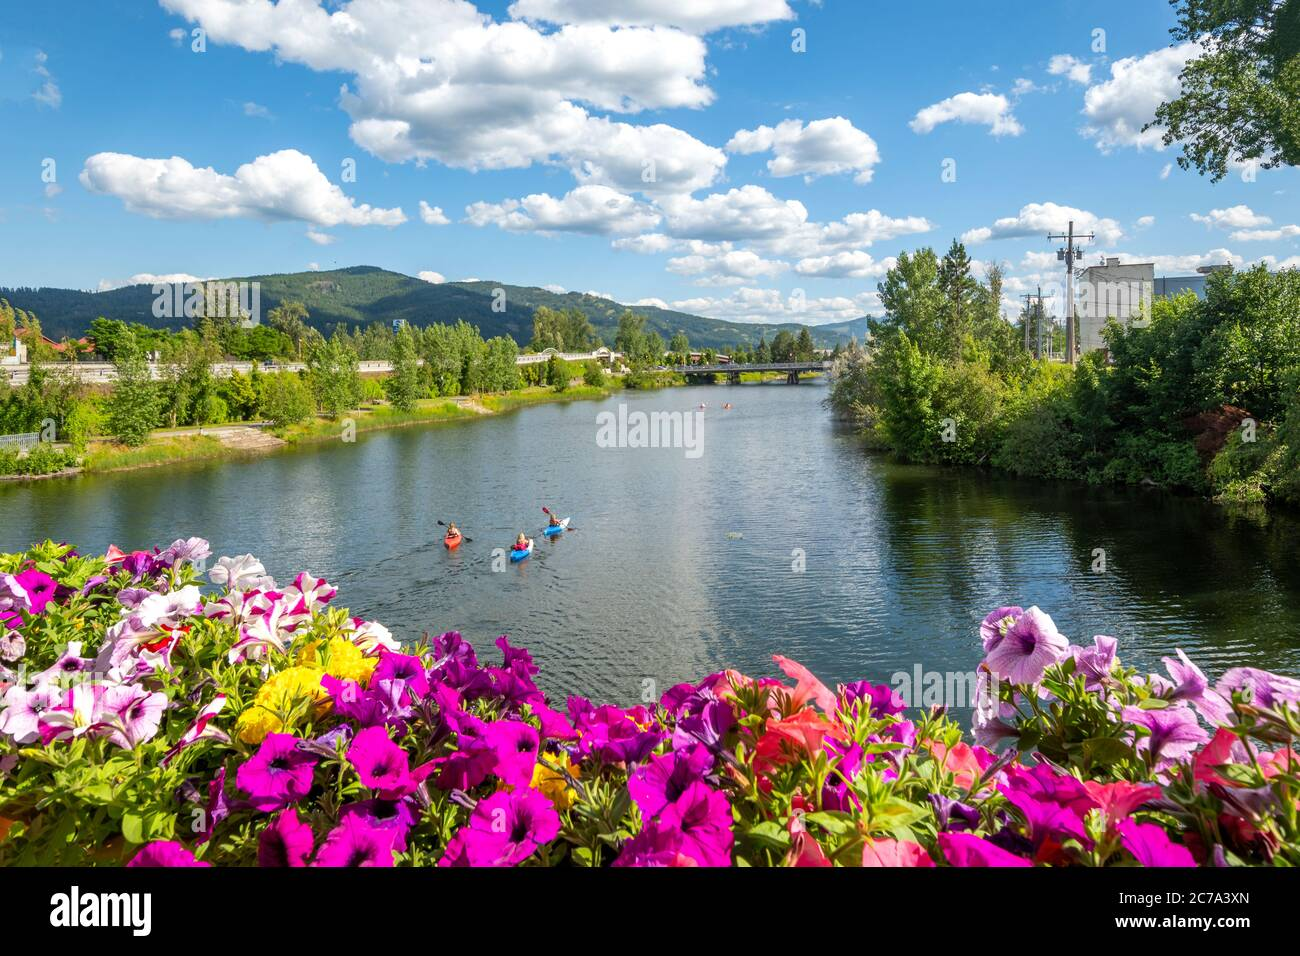 A group of kayakers enjoy a beautiful summer day on Sand Creek River and Lake Pend Oreille in the downtown area of Sandpoint, Idaho, USA Stock Photo